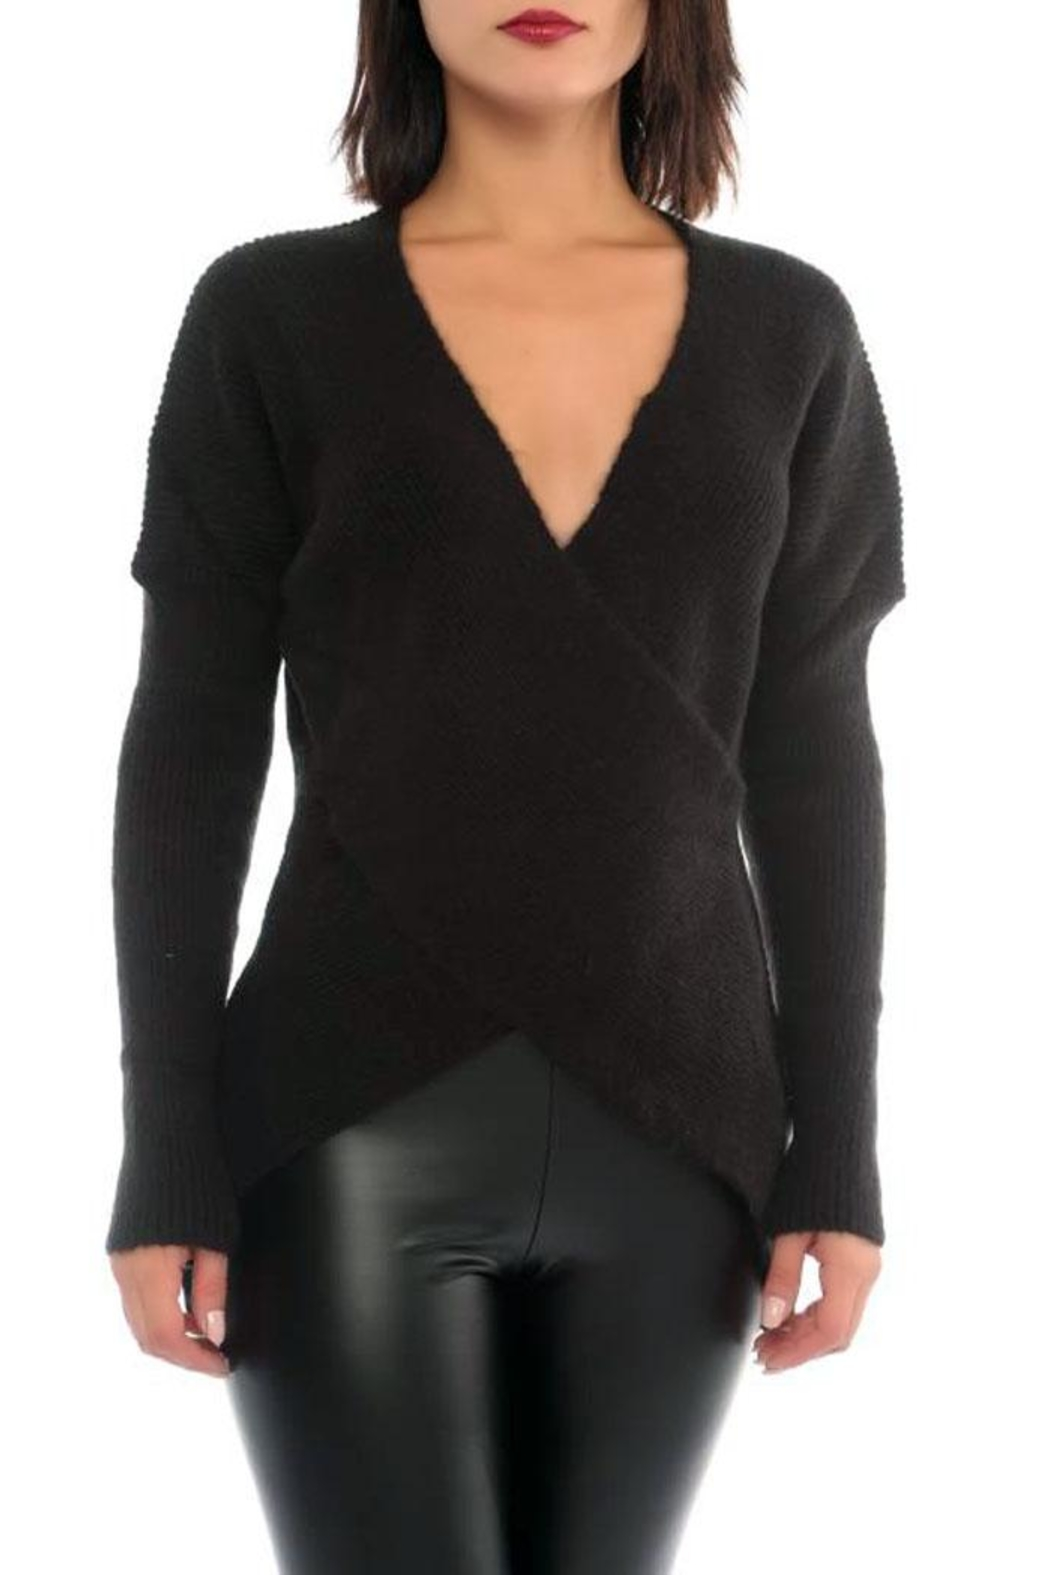 Marvy Fashion Boutique  Cross Front Sweater - Main Image